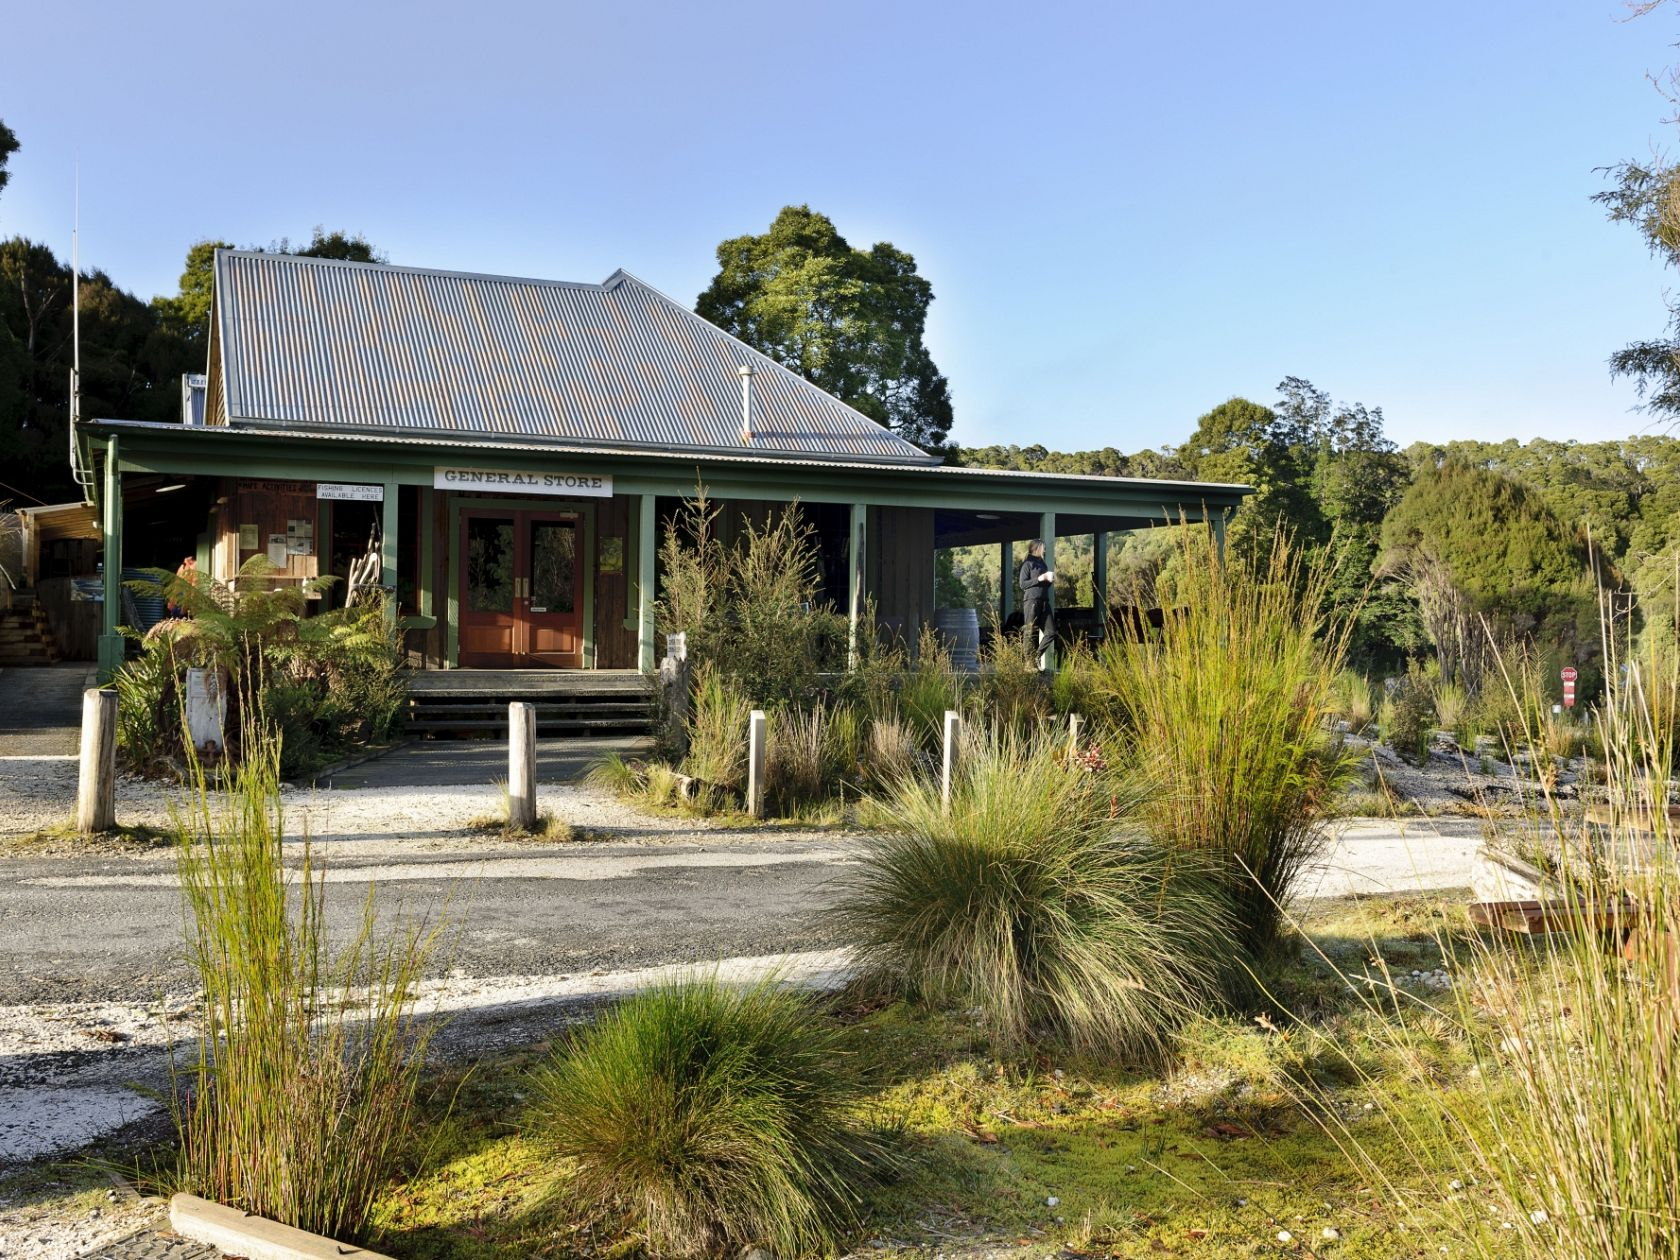 Diverse Eco-Tourism Business in the Tarkine, Tasmania